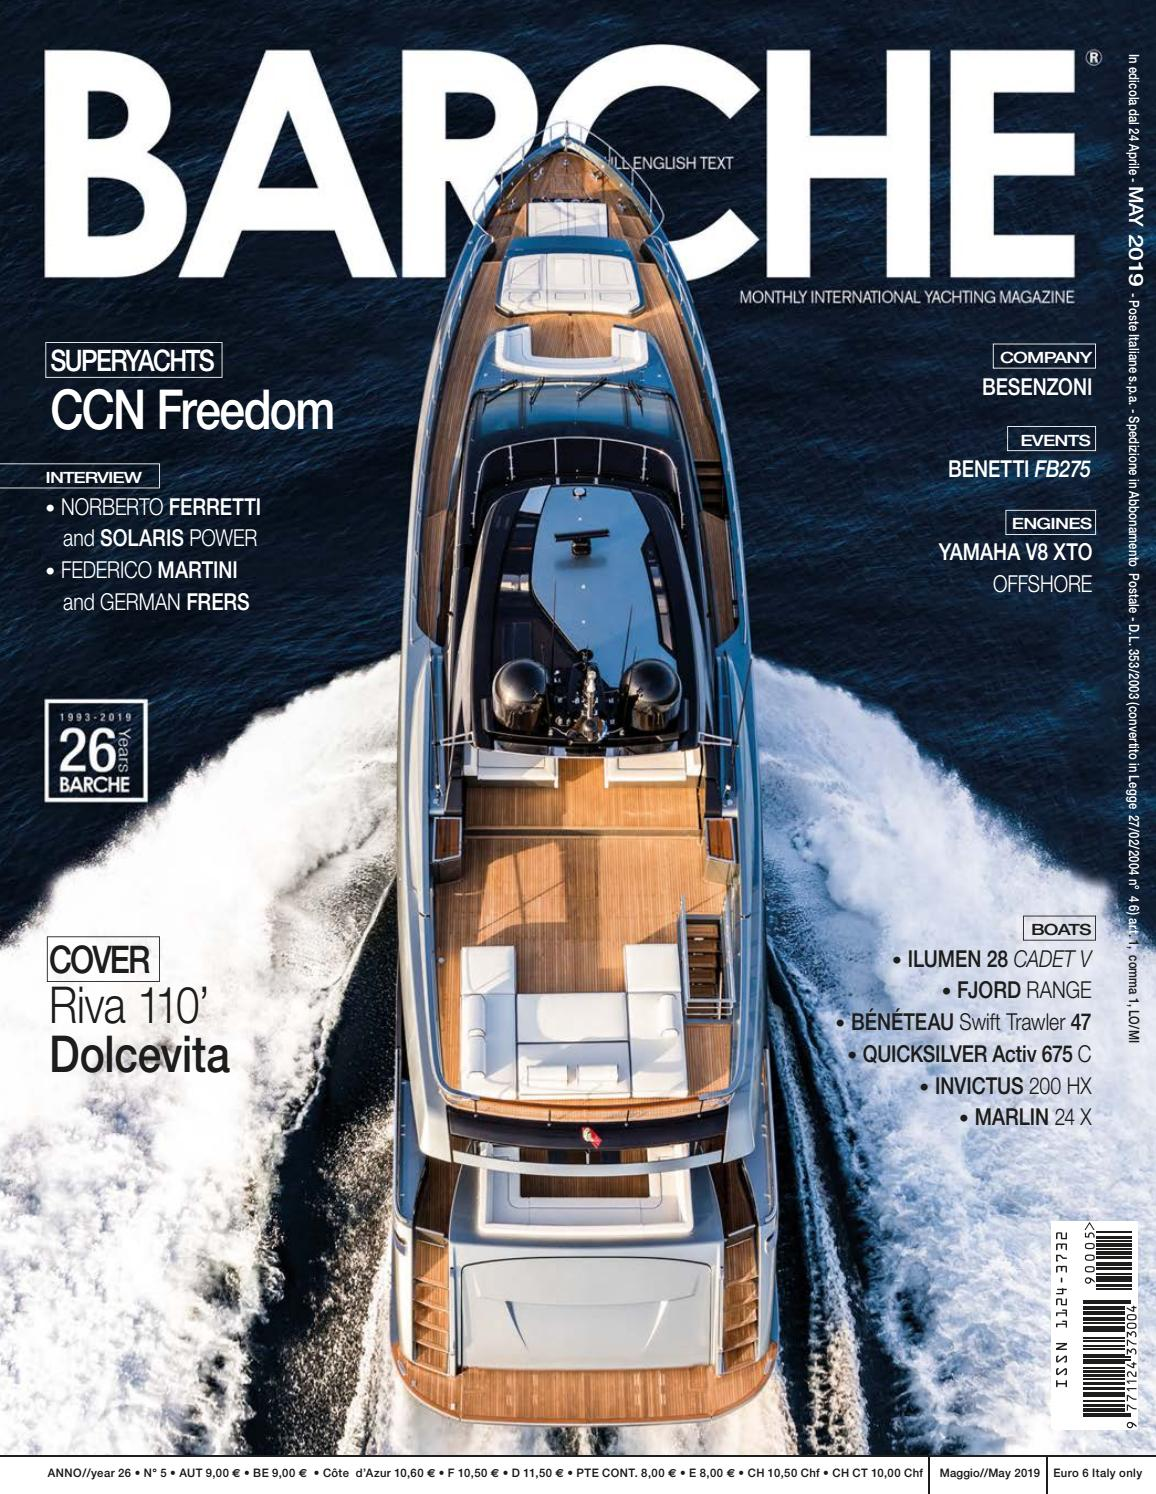 BARCHE MAY 2019 by INTERNATIONAL SEA PRESS SRL BARCHE issuu